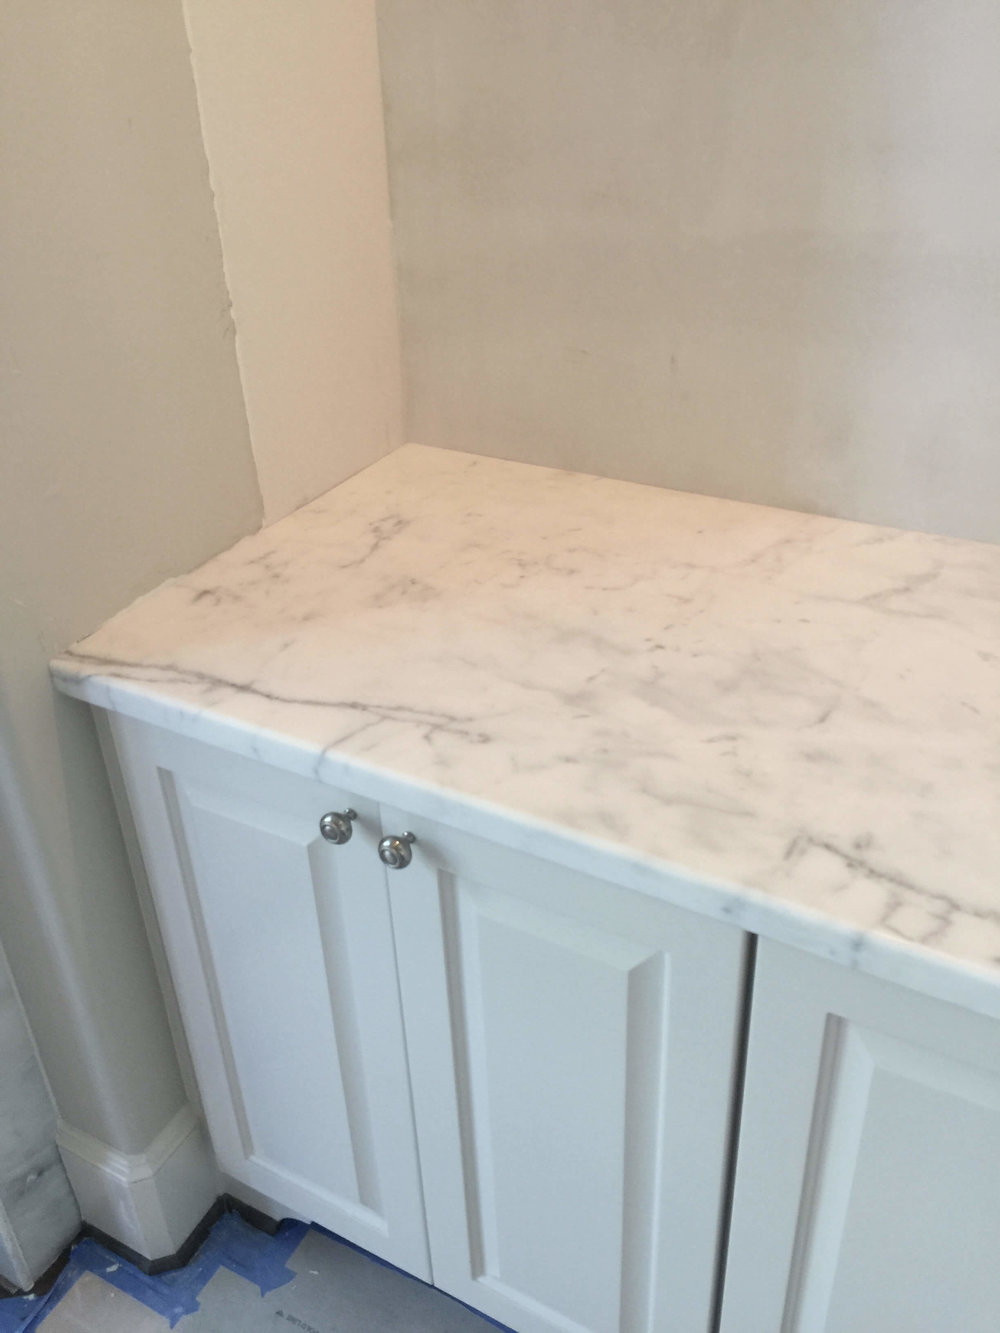 IN PROGRESS - New marble counters were added in the niche built-in cabinets #whitemarble #cabinetry #niche #countertop